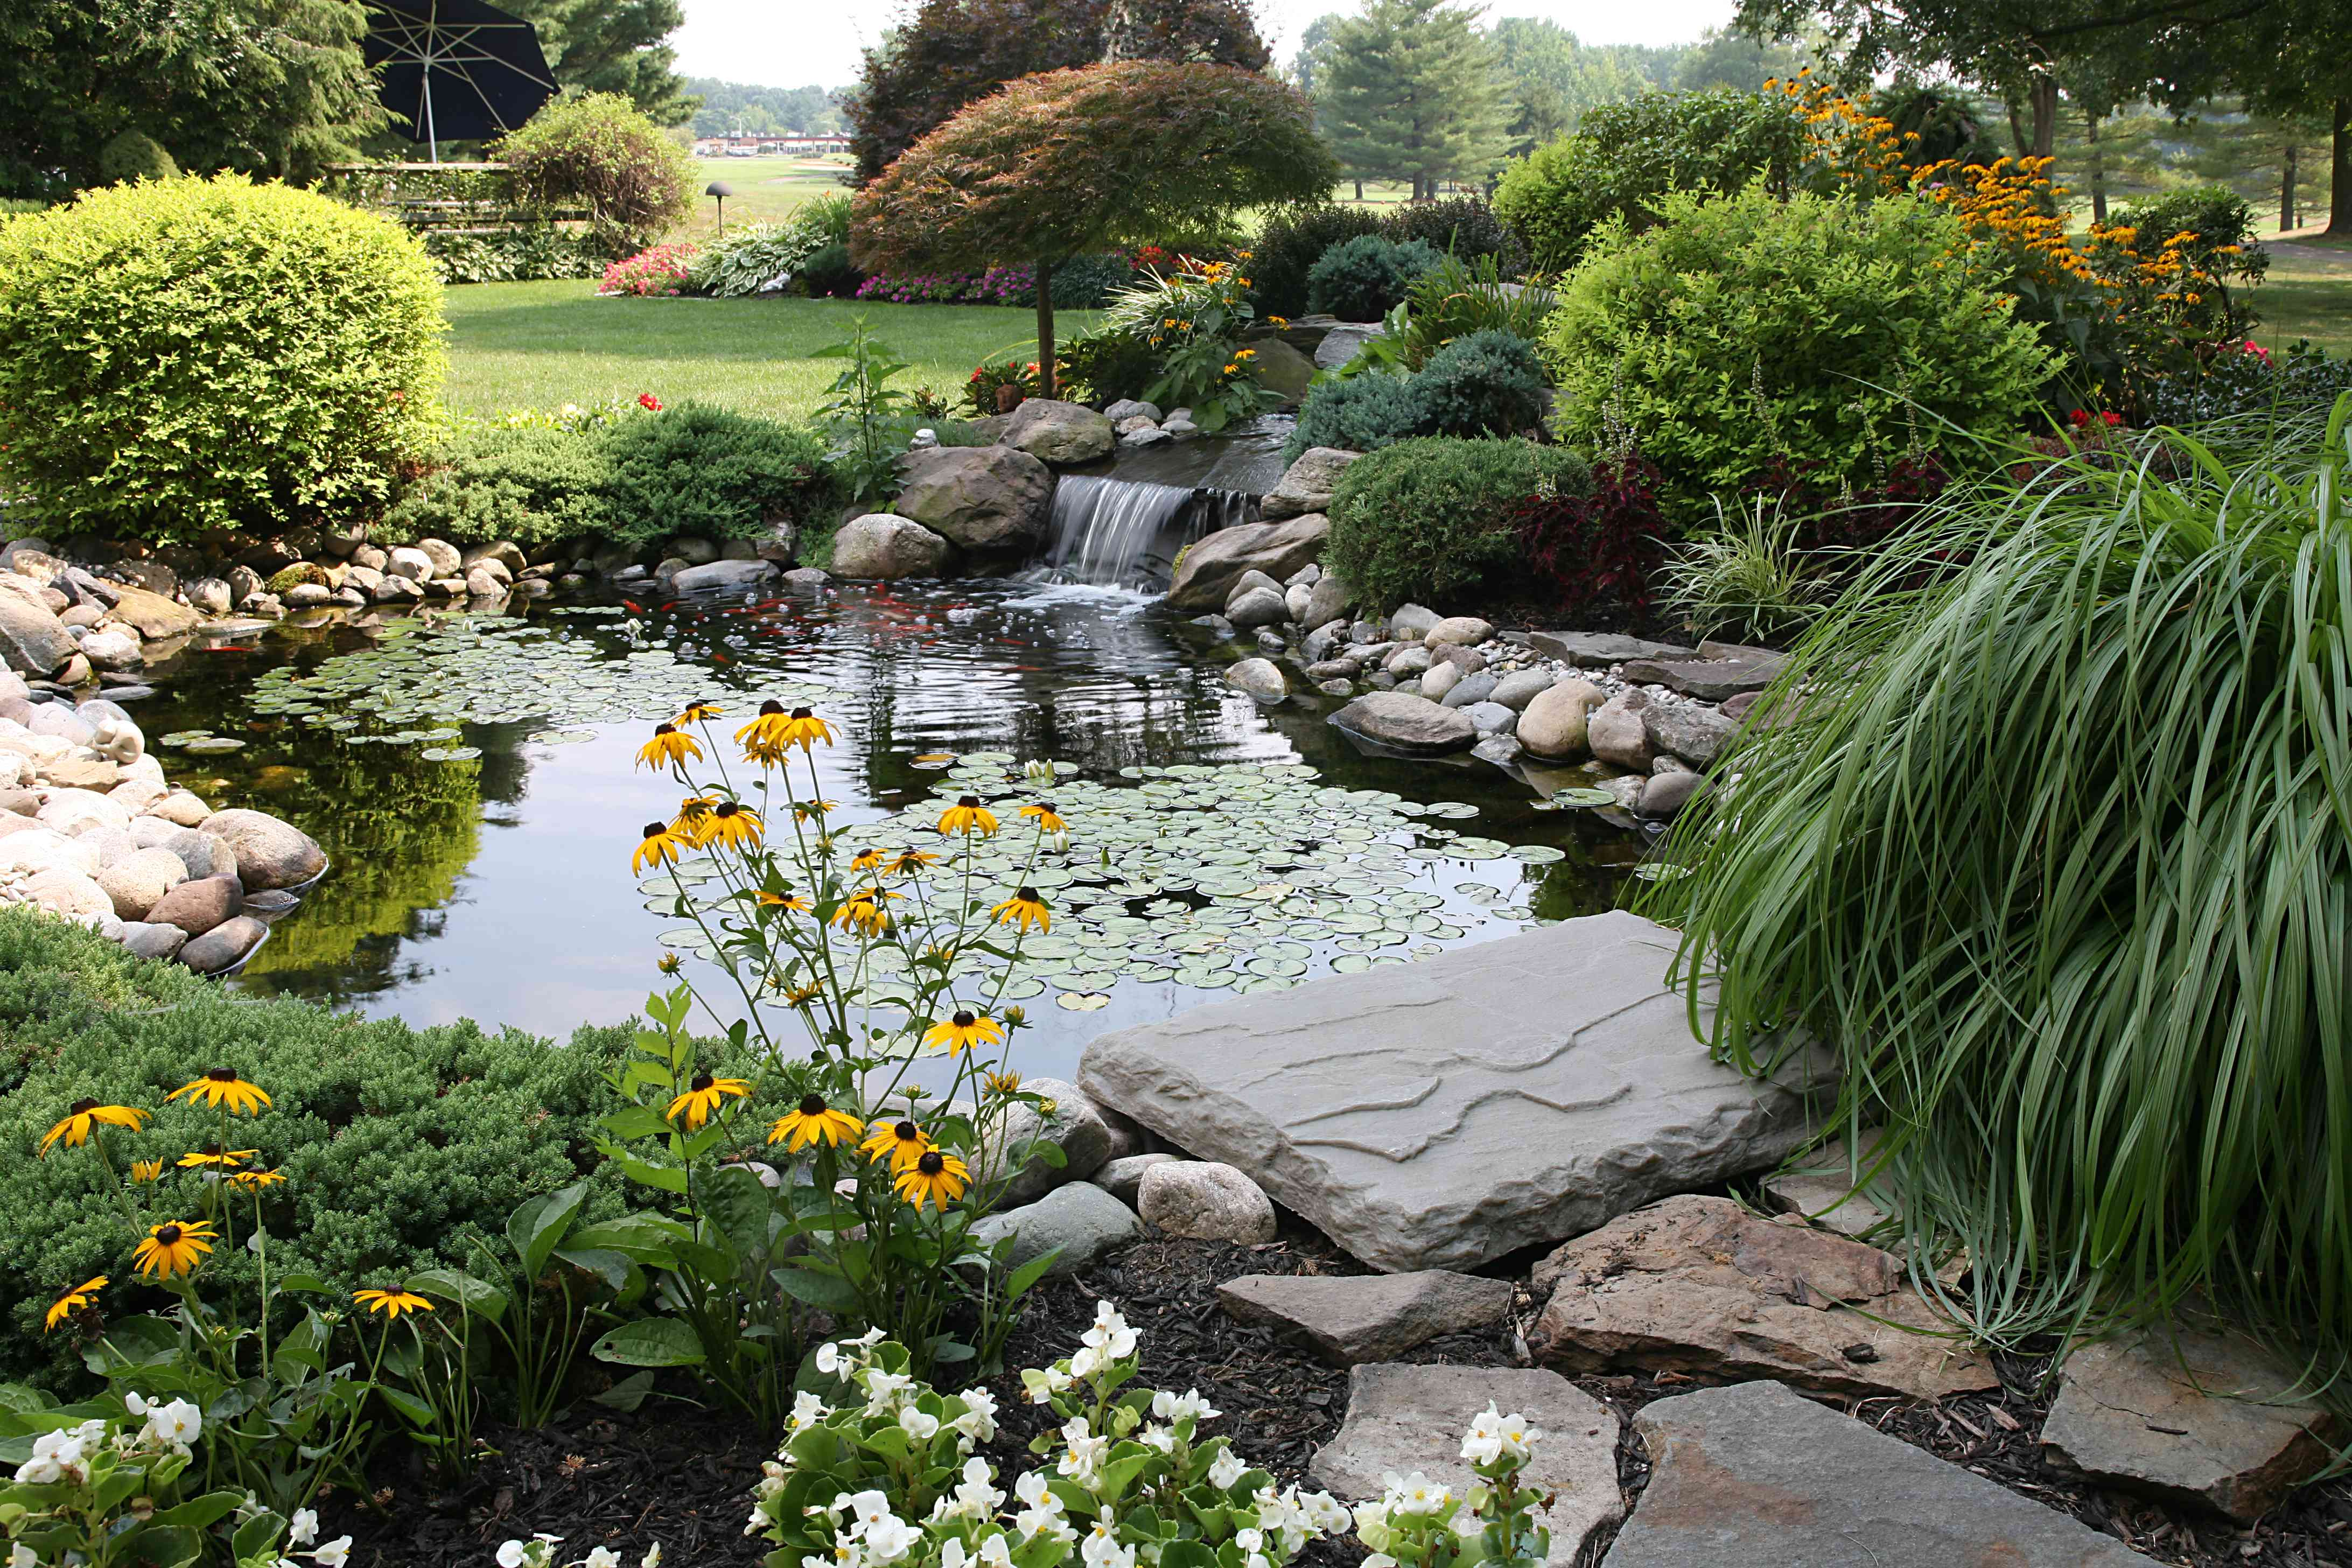 A natural-looking koi pond with a waterfall and rocks.